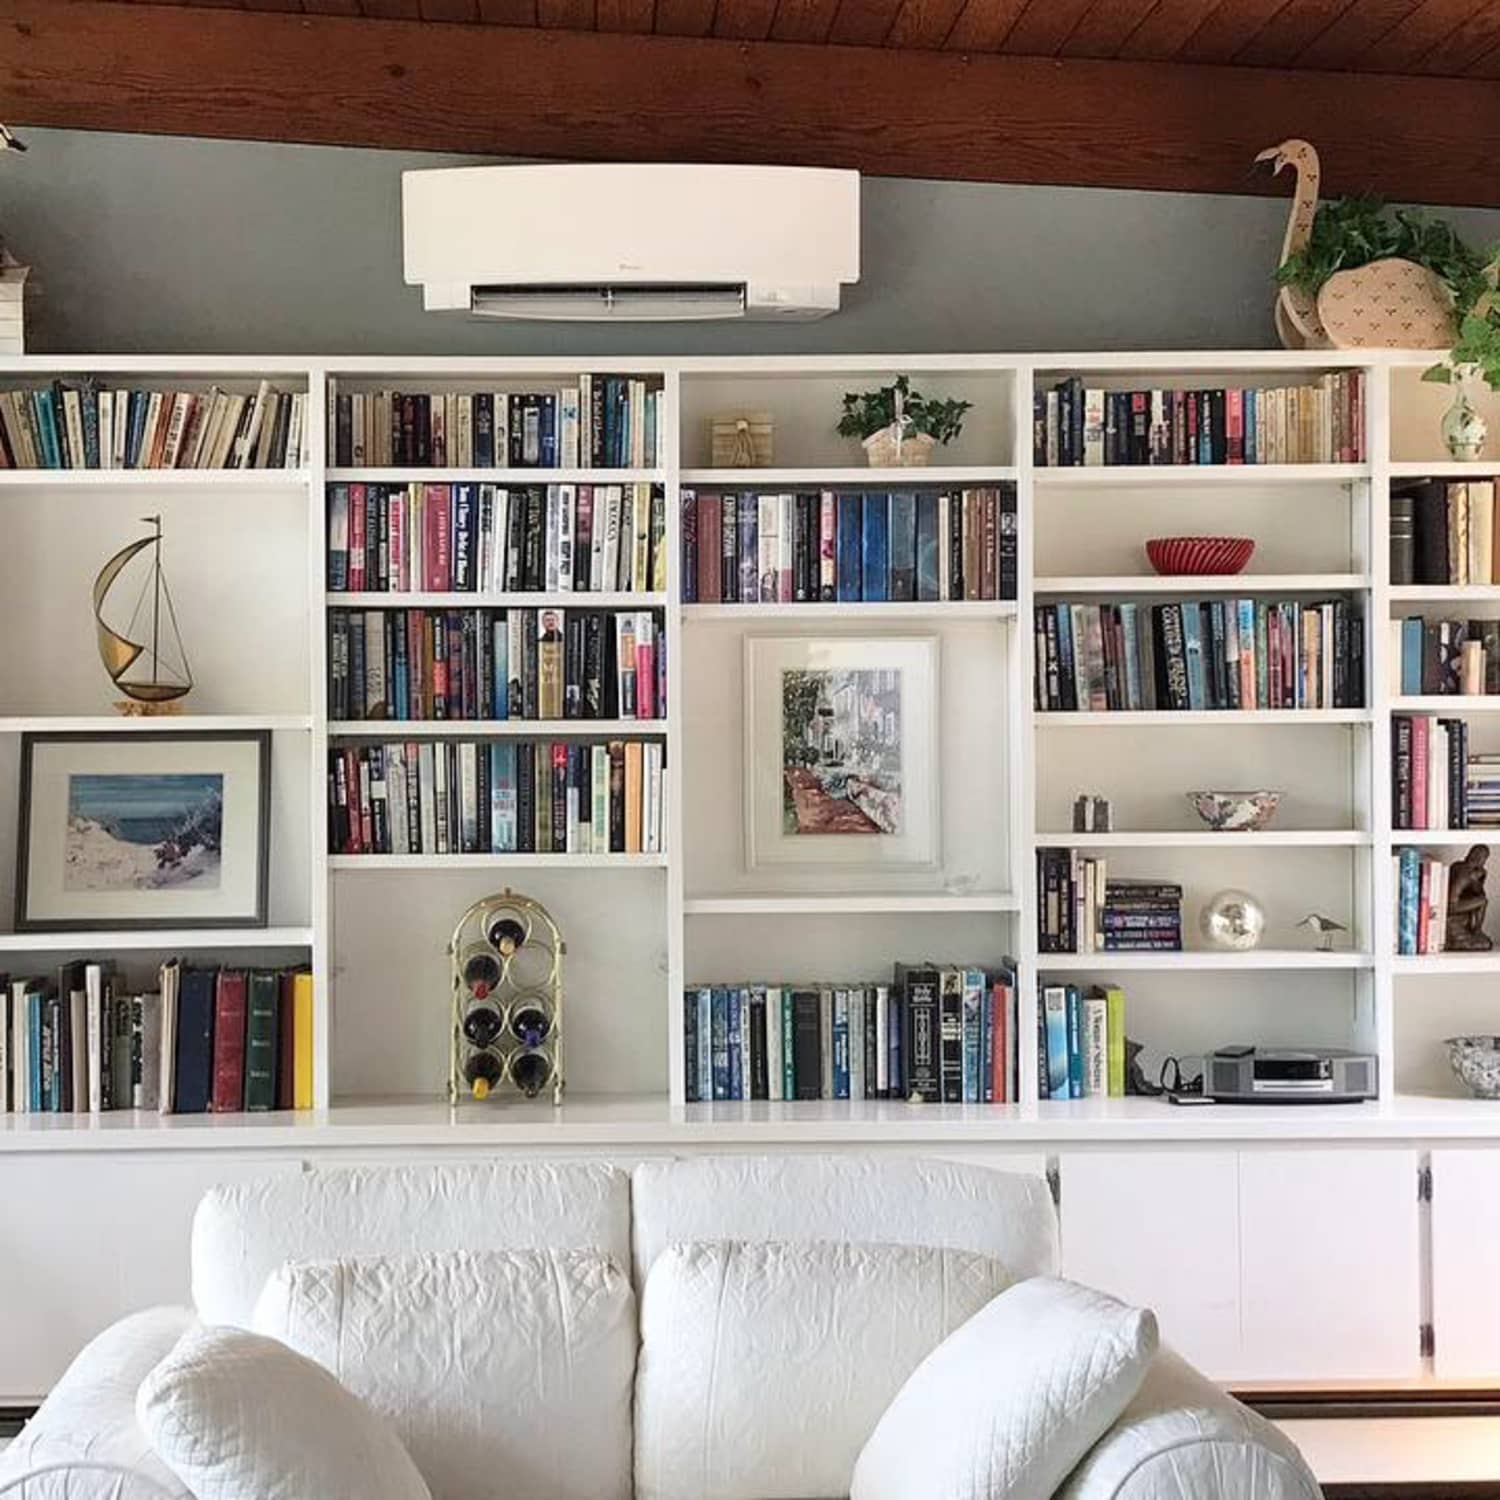 Before And After A Bold Living Room Bookshelf Transformation For Less Than 100 Apartment Therapy